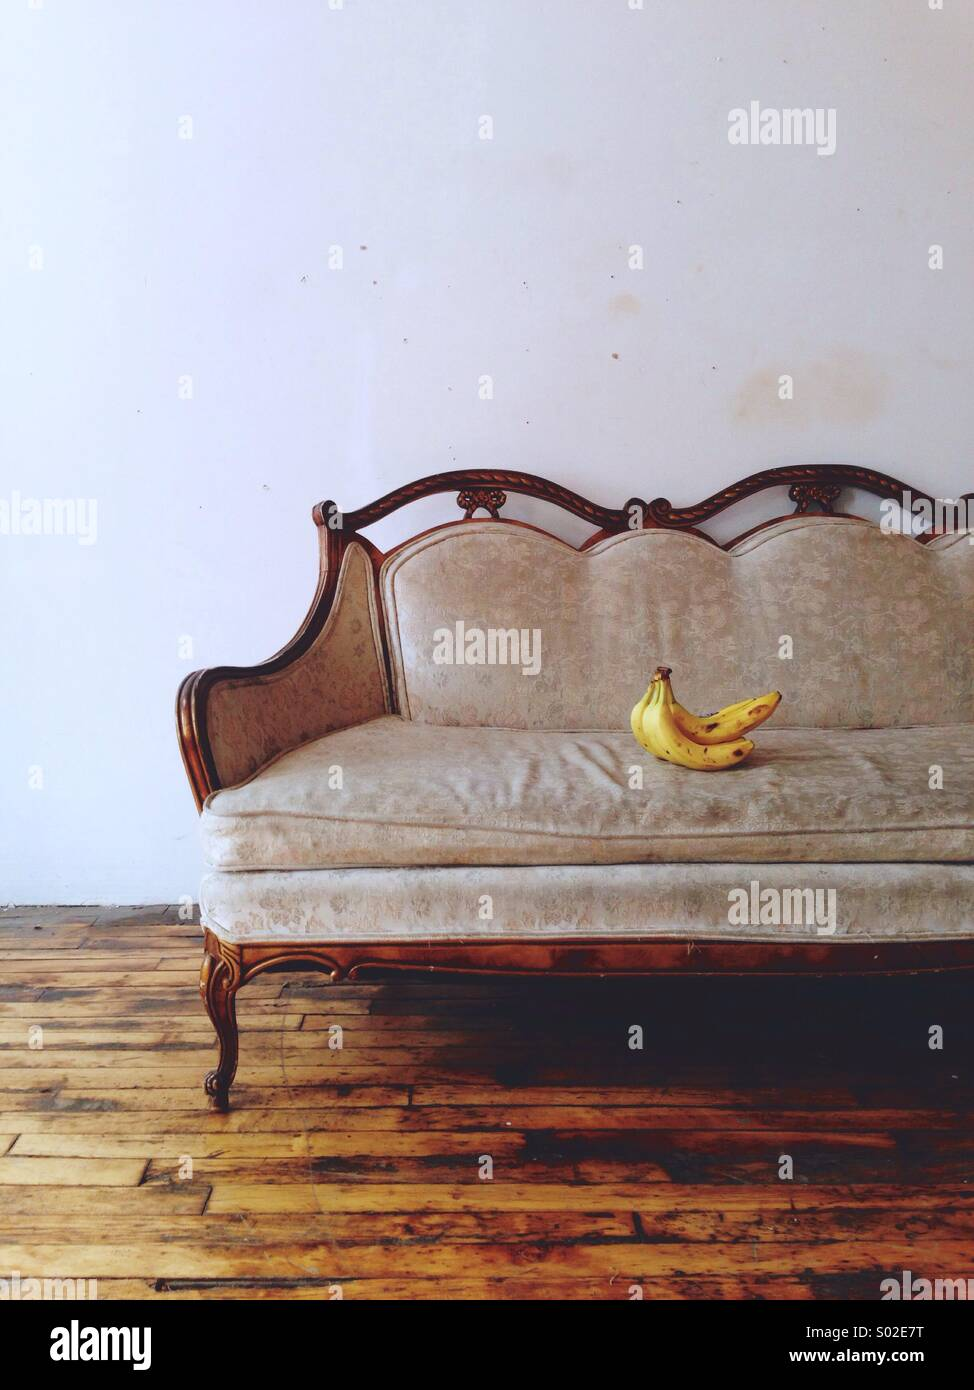 Chair, Sofa, With Bananas, Classical, Fruit, Art, Artistic, Artsy. Wood  Floor, Wood Furniture, White Wall, Old, Rustic, Shabby. Yellow Banana.